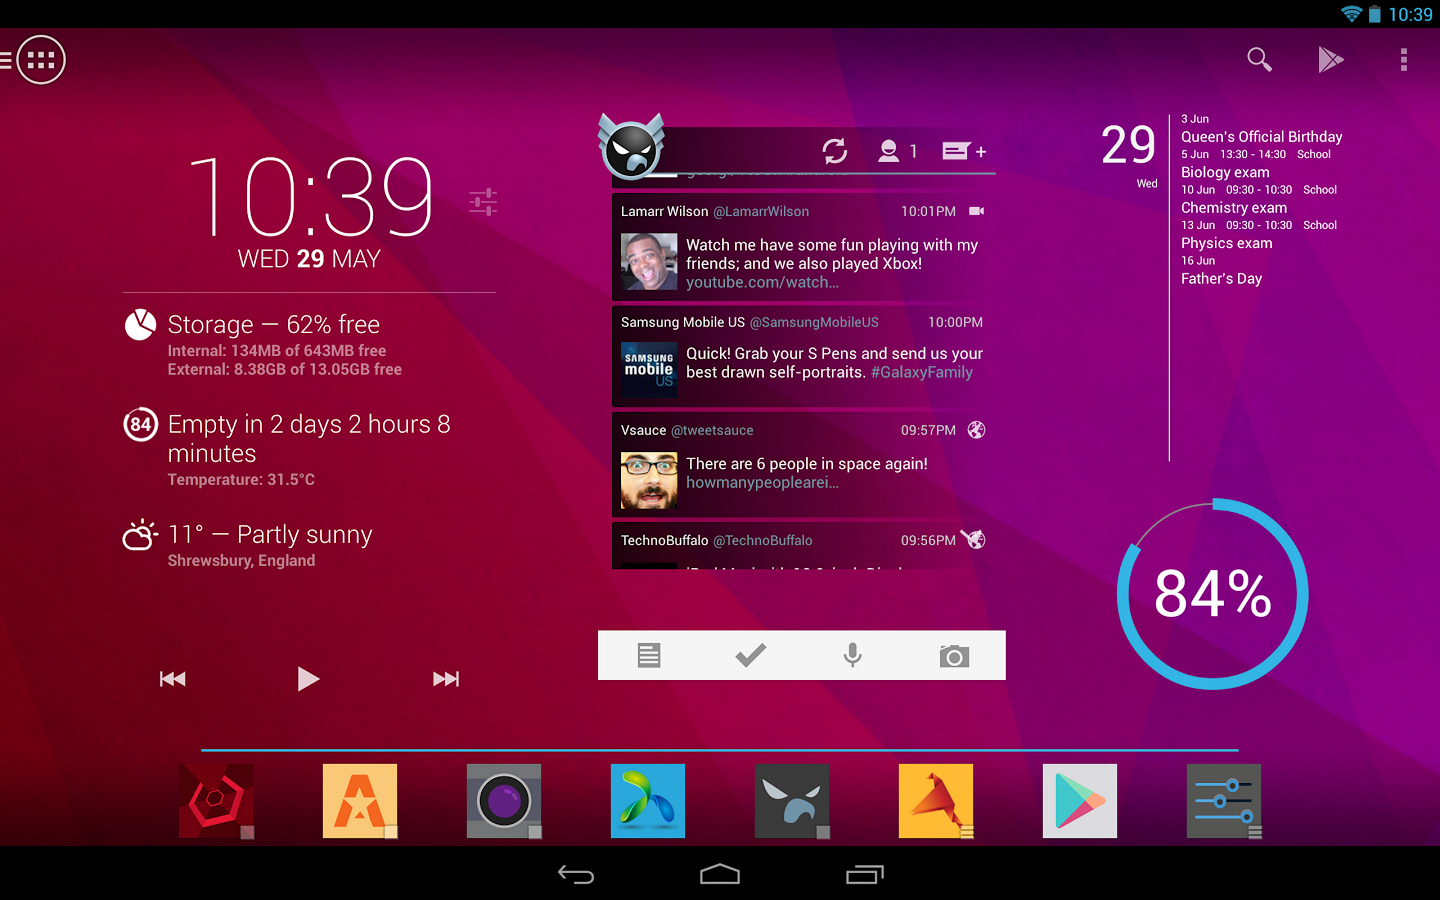 33 Best New Android Apps And Live Wallpapers From The Last 2 Weeks (12/2/13 - 12/17/13)